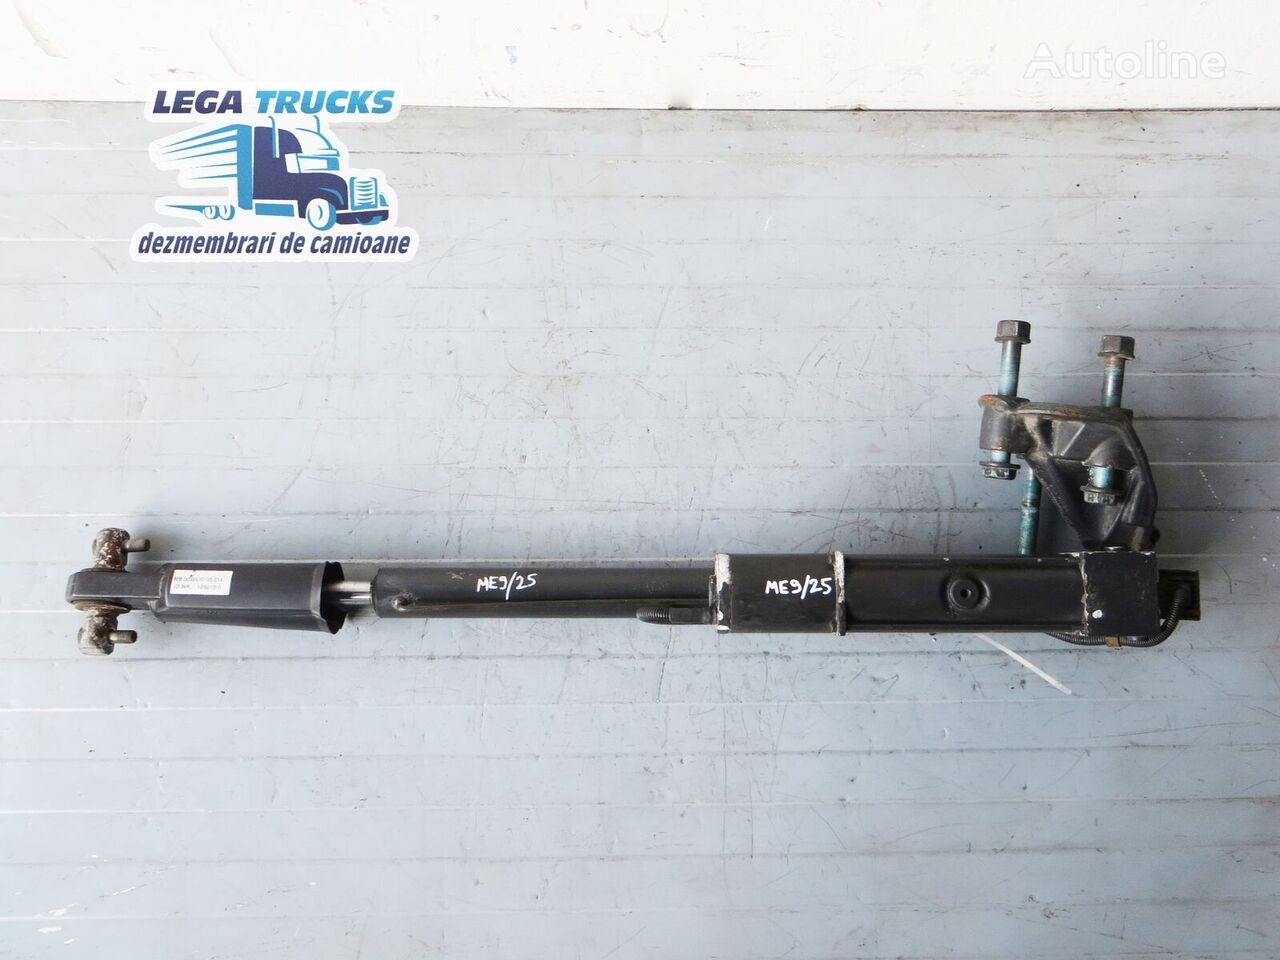 Cilindru Rabatare Cabina Cu Pompa Electrica hydraulic cylinder for MERCEDES-BENZ Actros tractor unit